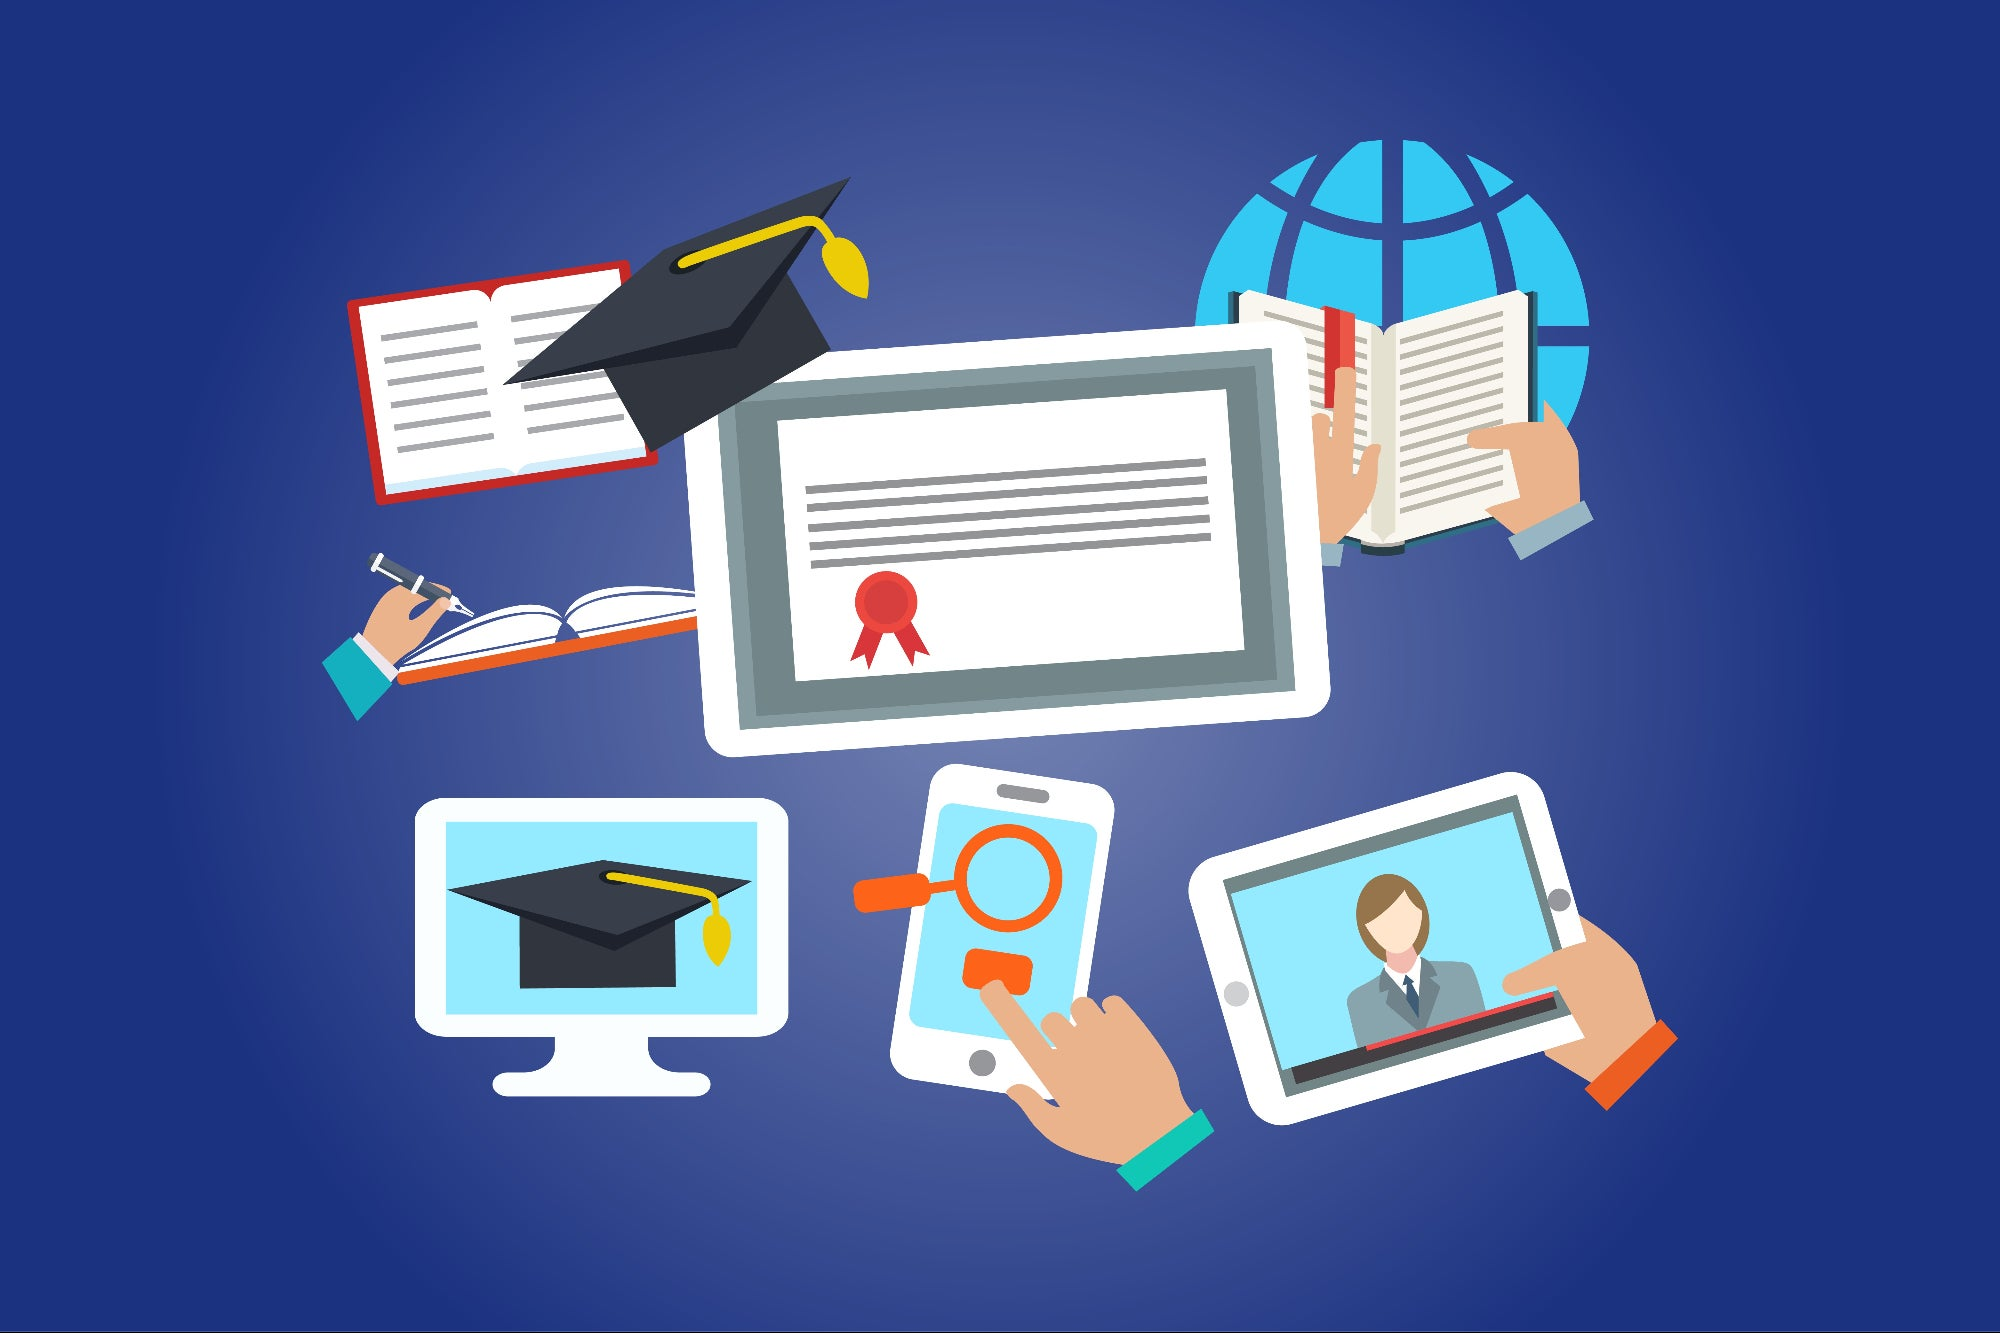 The hybrid education system: Accepting the new form of education system